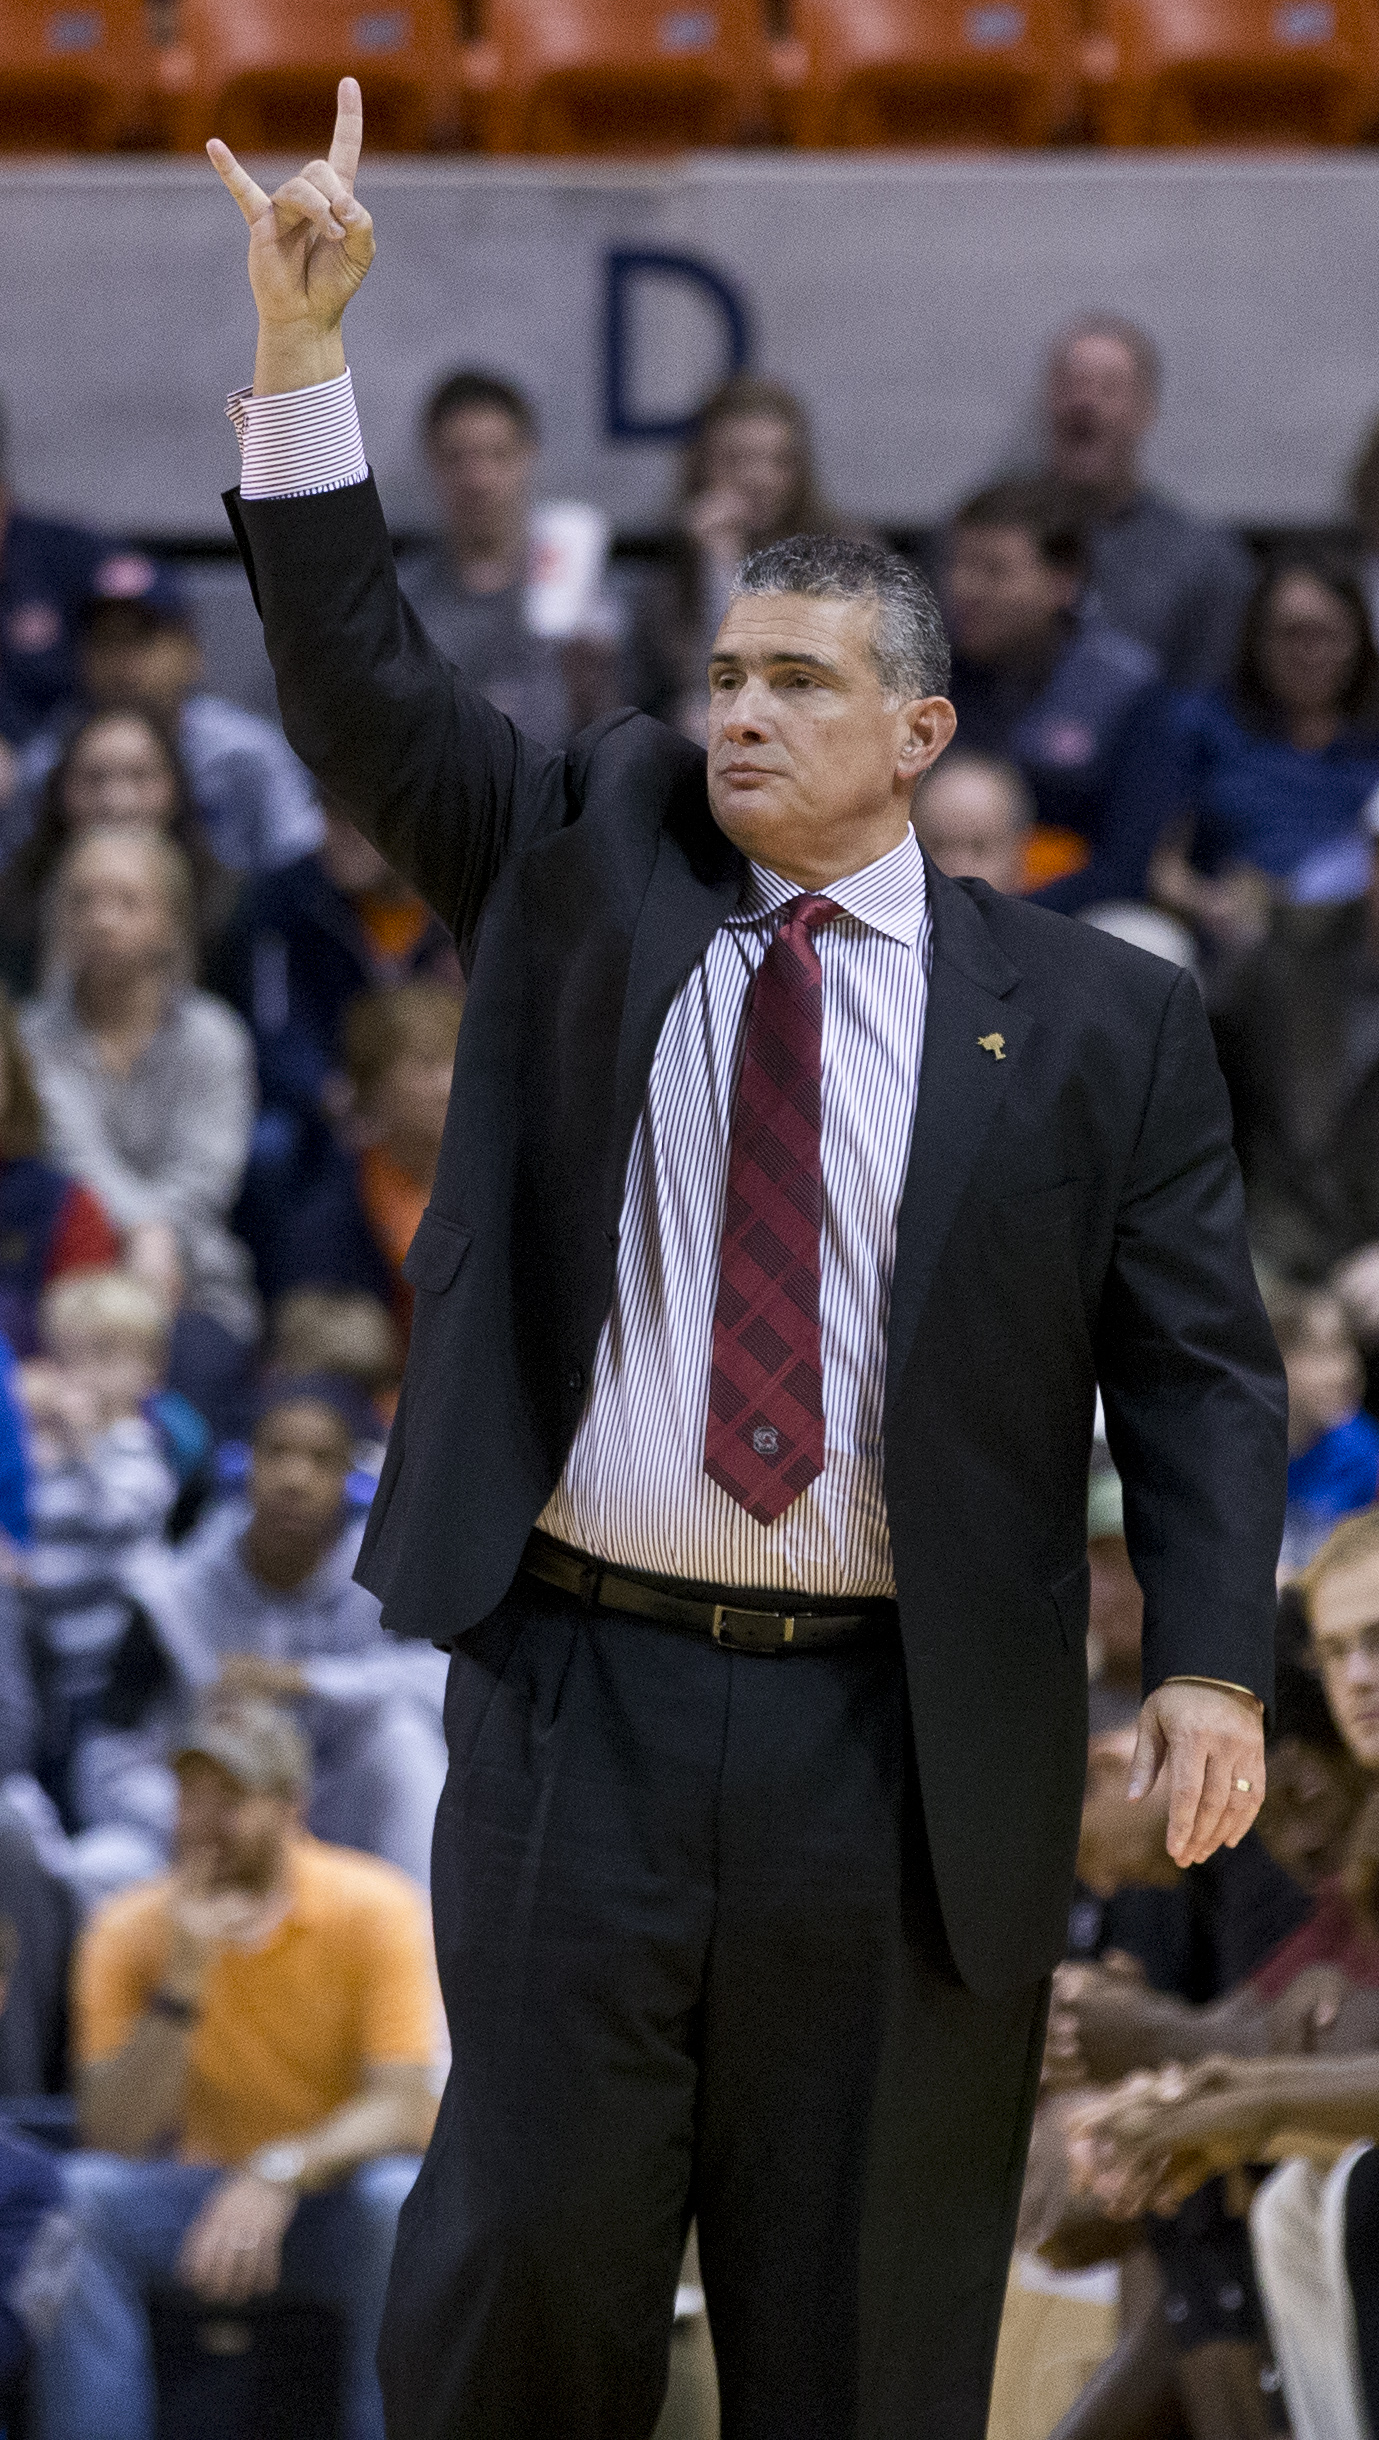 South Carolina head coach Frank Martin signals to his players during the first half of an NCAA college basketball game against Auburn, Tuesday, Jan. 5, 2016, in Auburn, Ala. (AP Photo/Brynn Anderson)